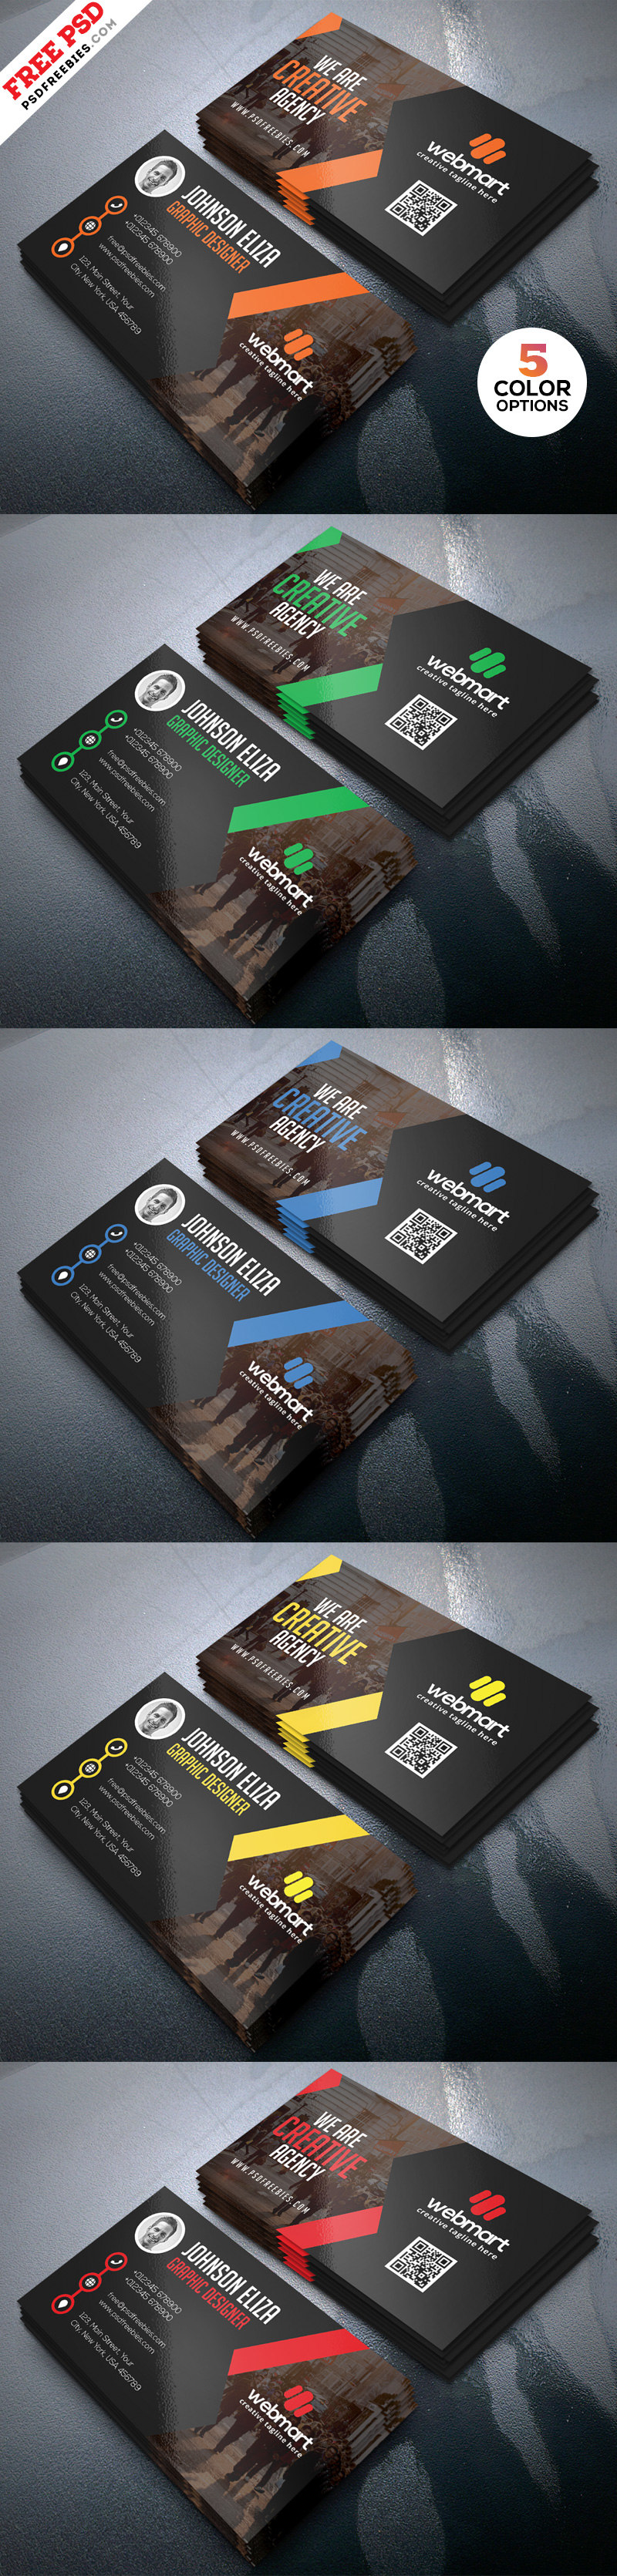 Free Business Card PSD Template